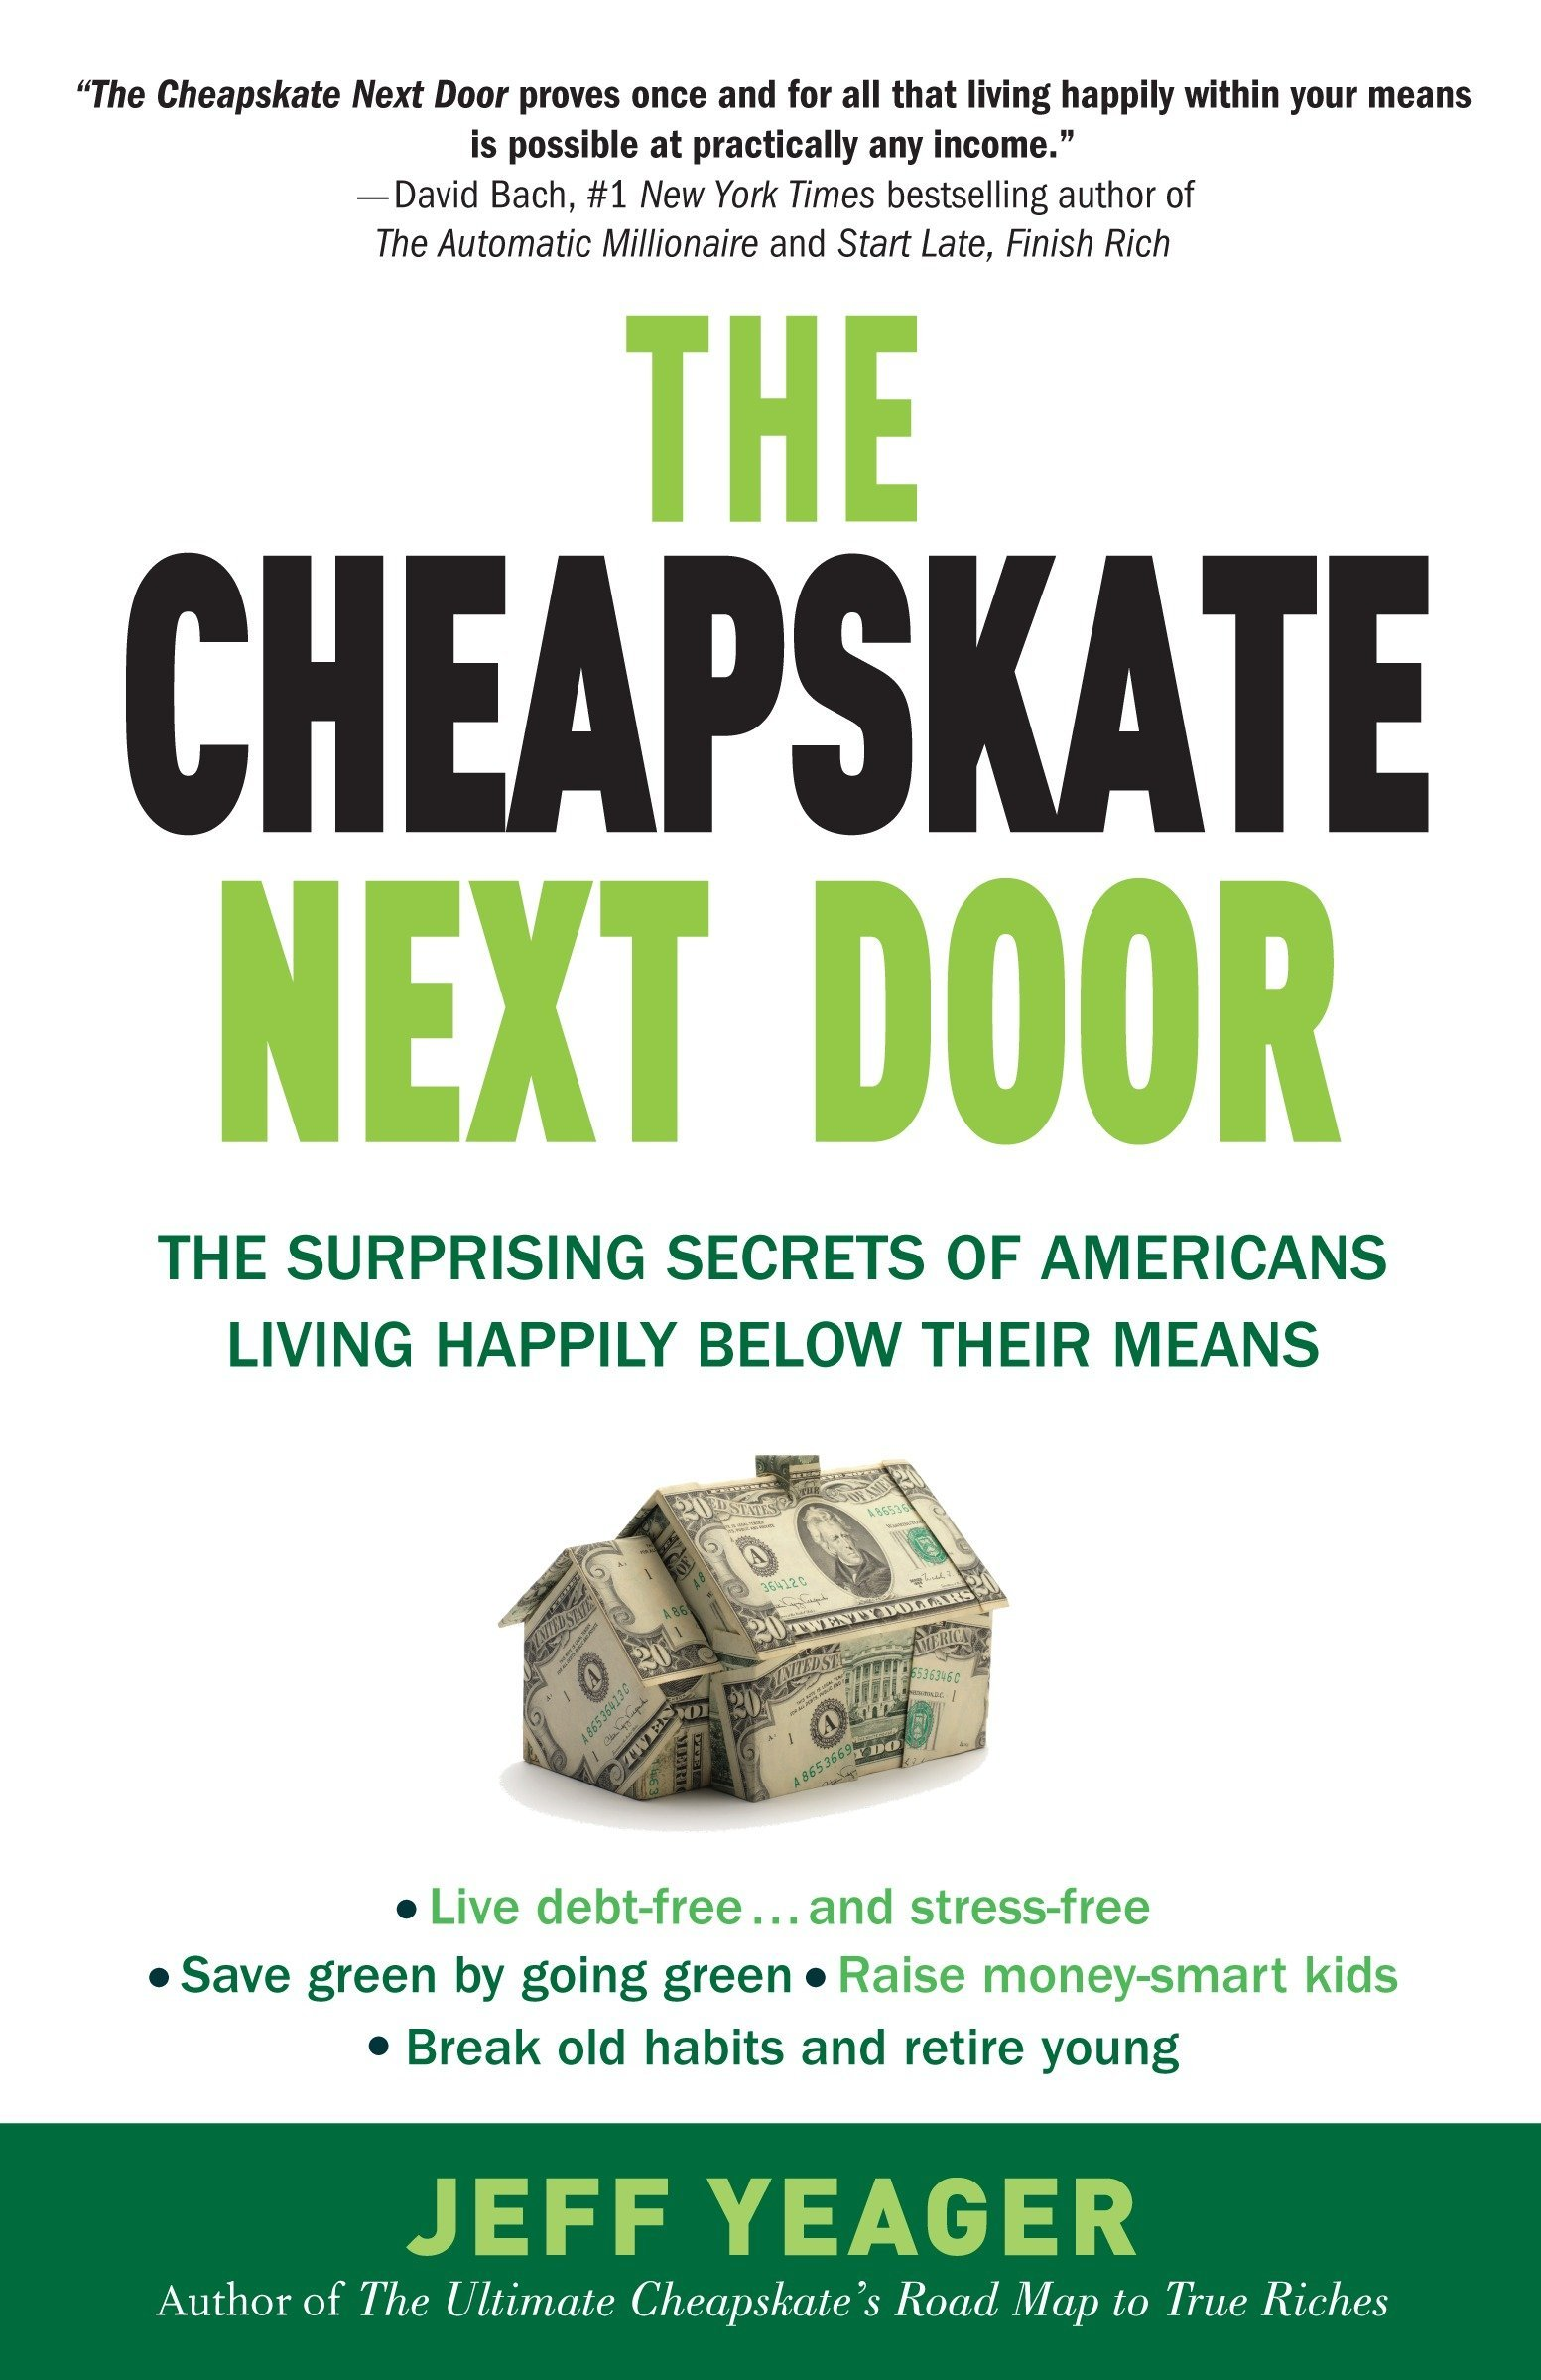 The Cheapskate Next Door: The Surprising Secrets of Americans Living  Happily Below Their Means: Jeff Yeager: 9780767931328: Amazon.com: Books